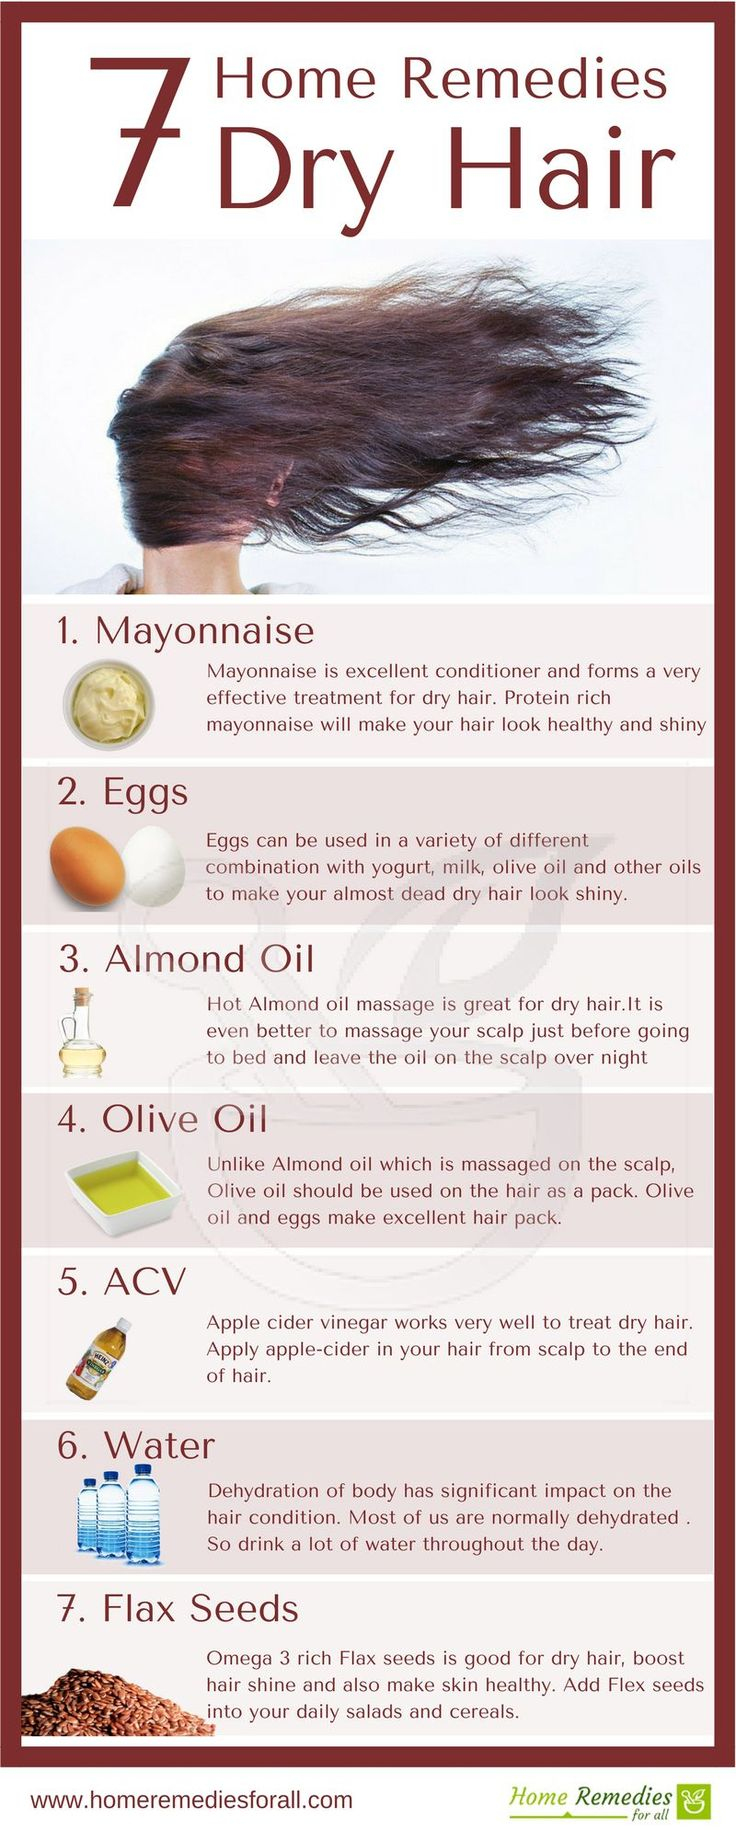 These 7 home remedies for dry hair will make your hair healthy, glossy and shiny in a very short time.